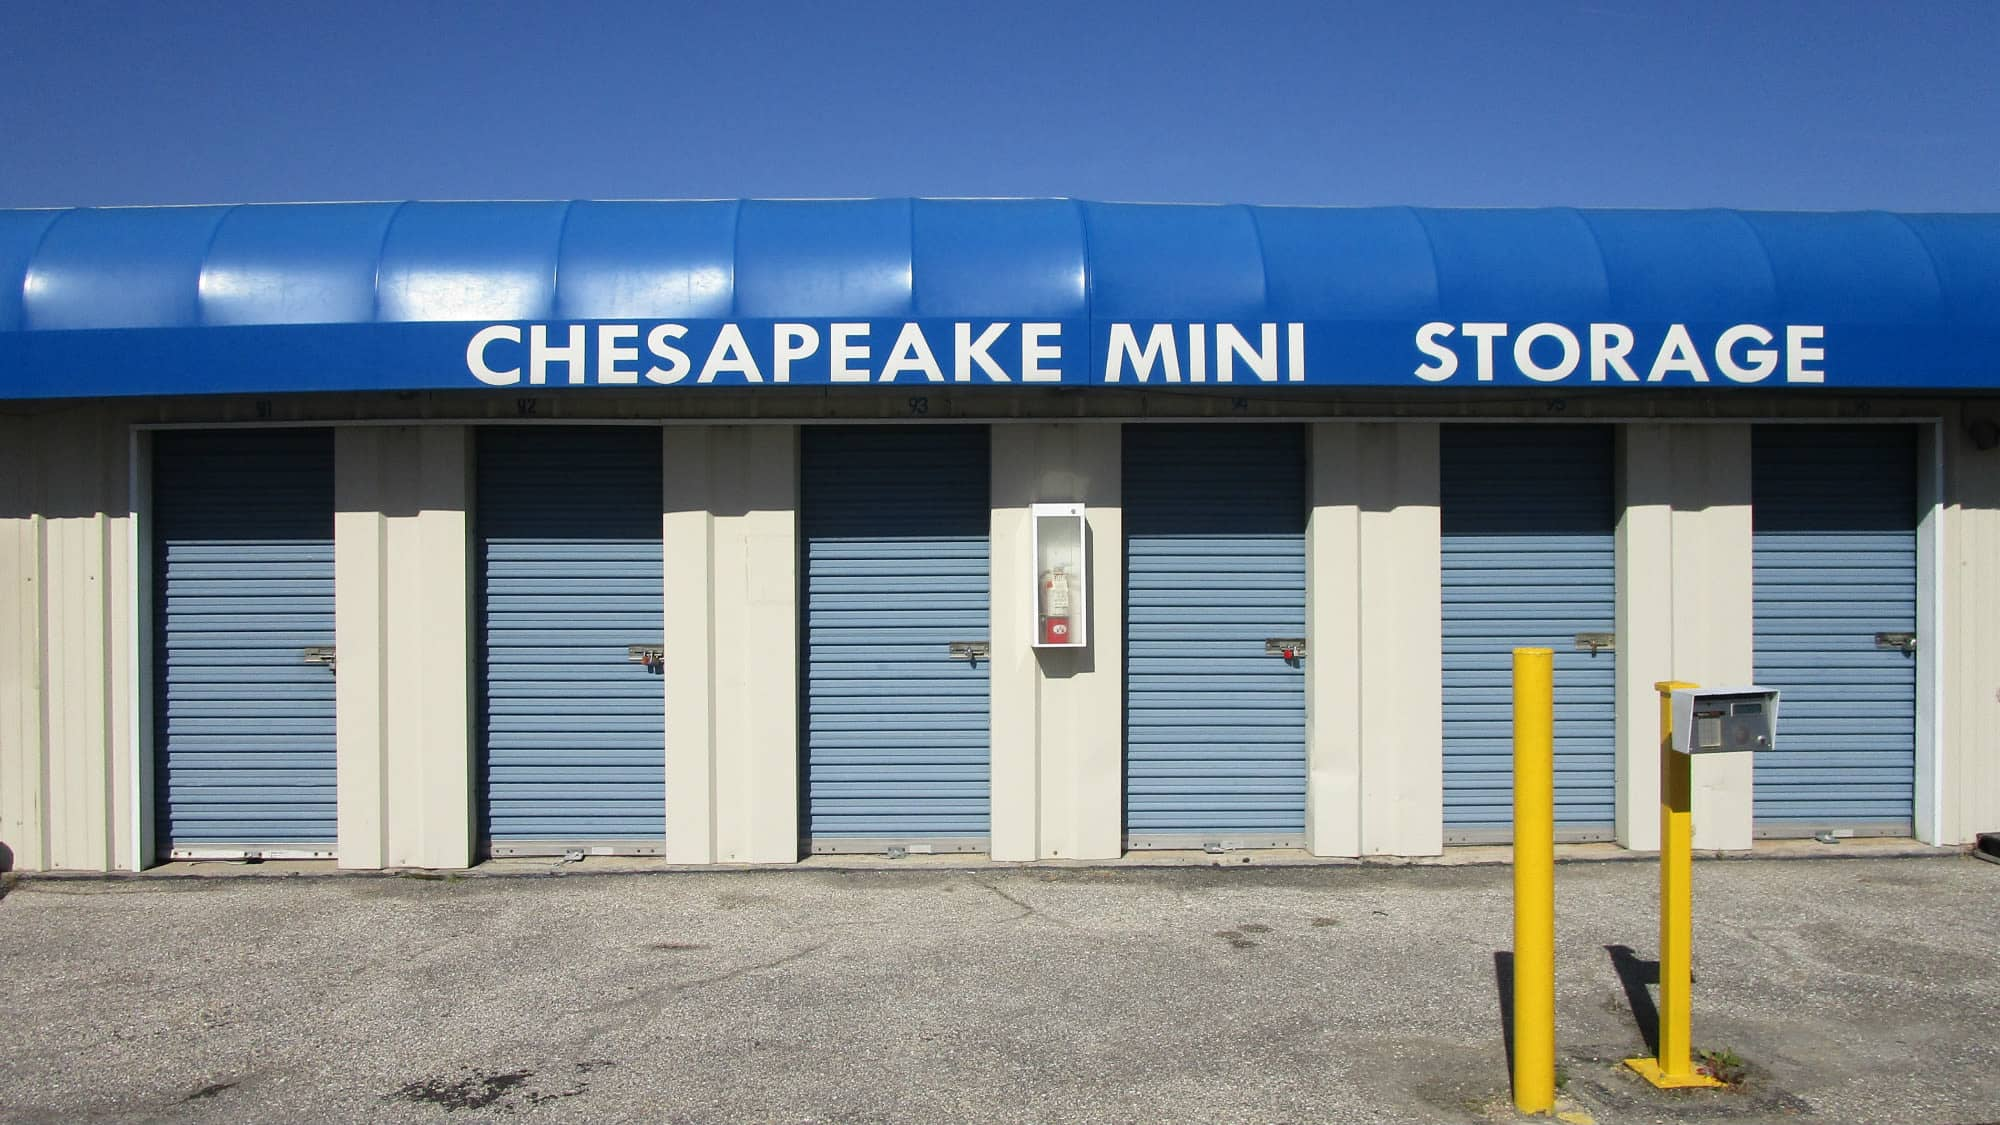 Keypad for exiting Chesapeake Mini Storage in Baltimore, Maryland